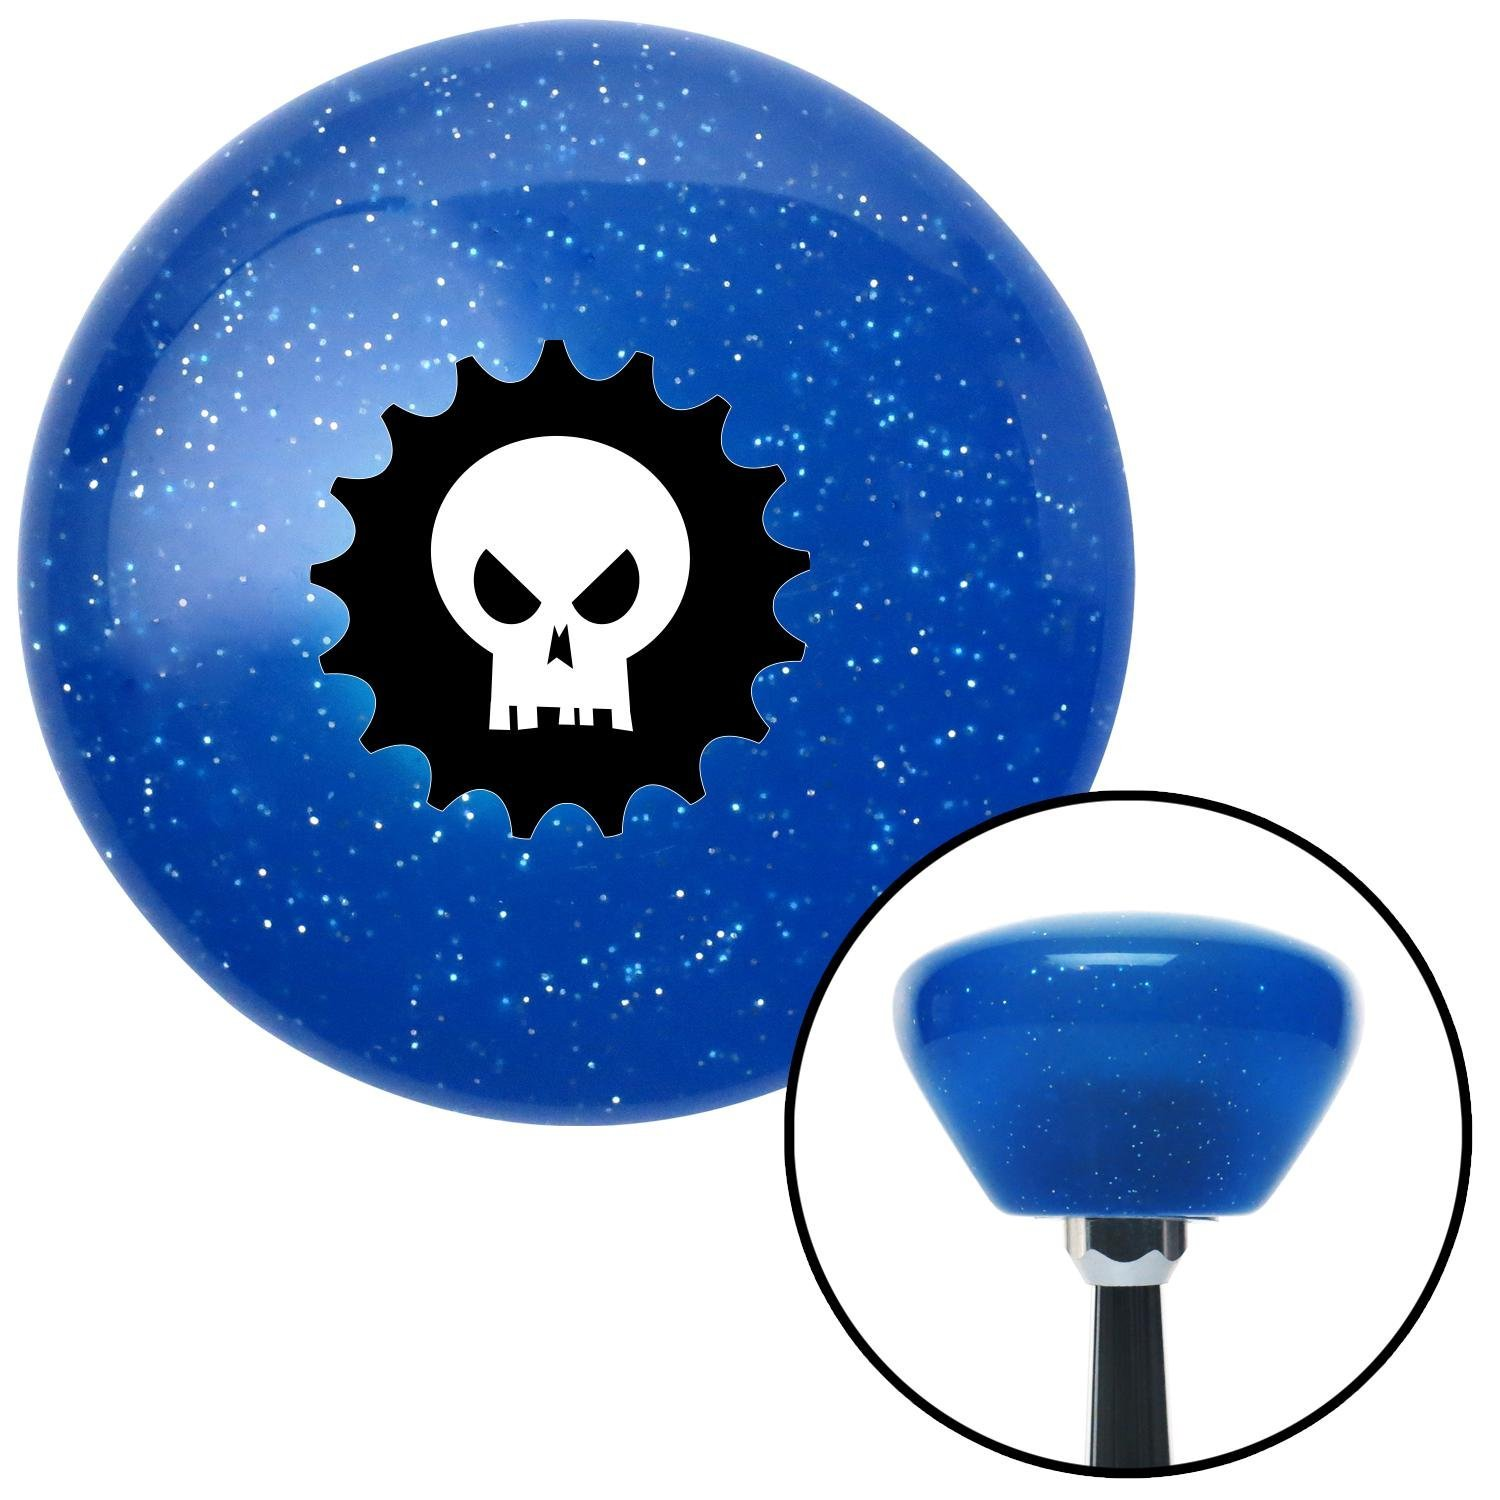 Hellraiser American Shifter 191442 Blue Retro Metal Flake Shift Knob with M16 x 1.5 Insert